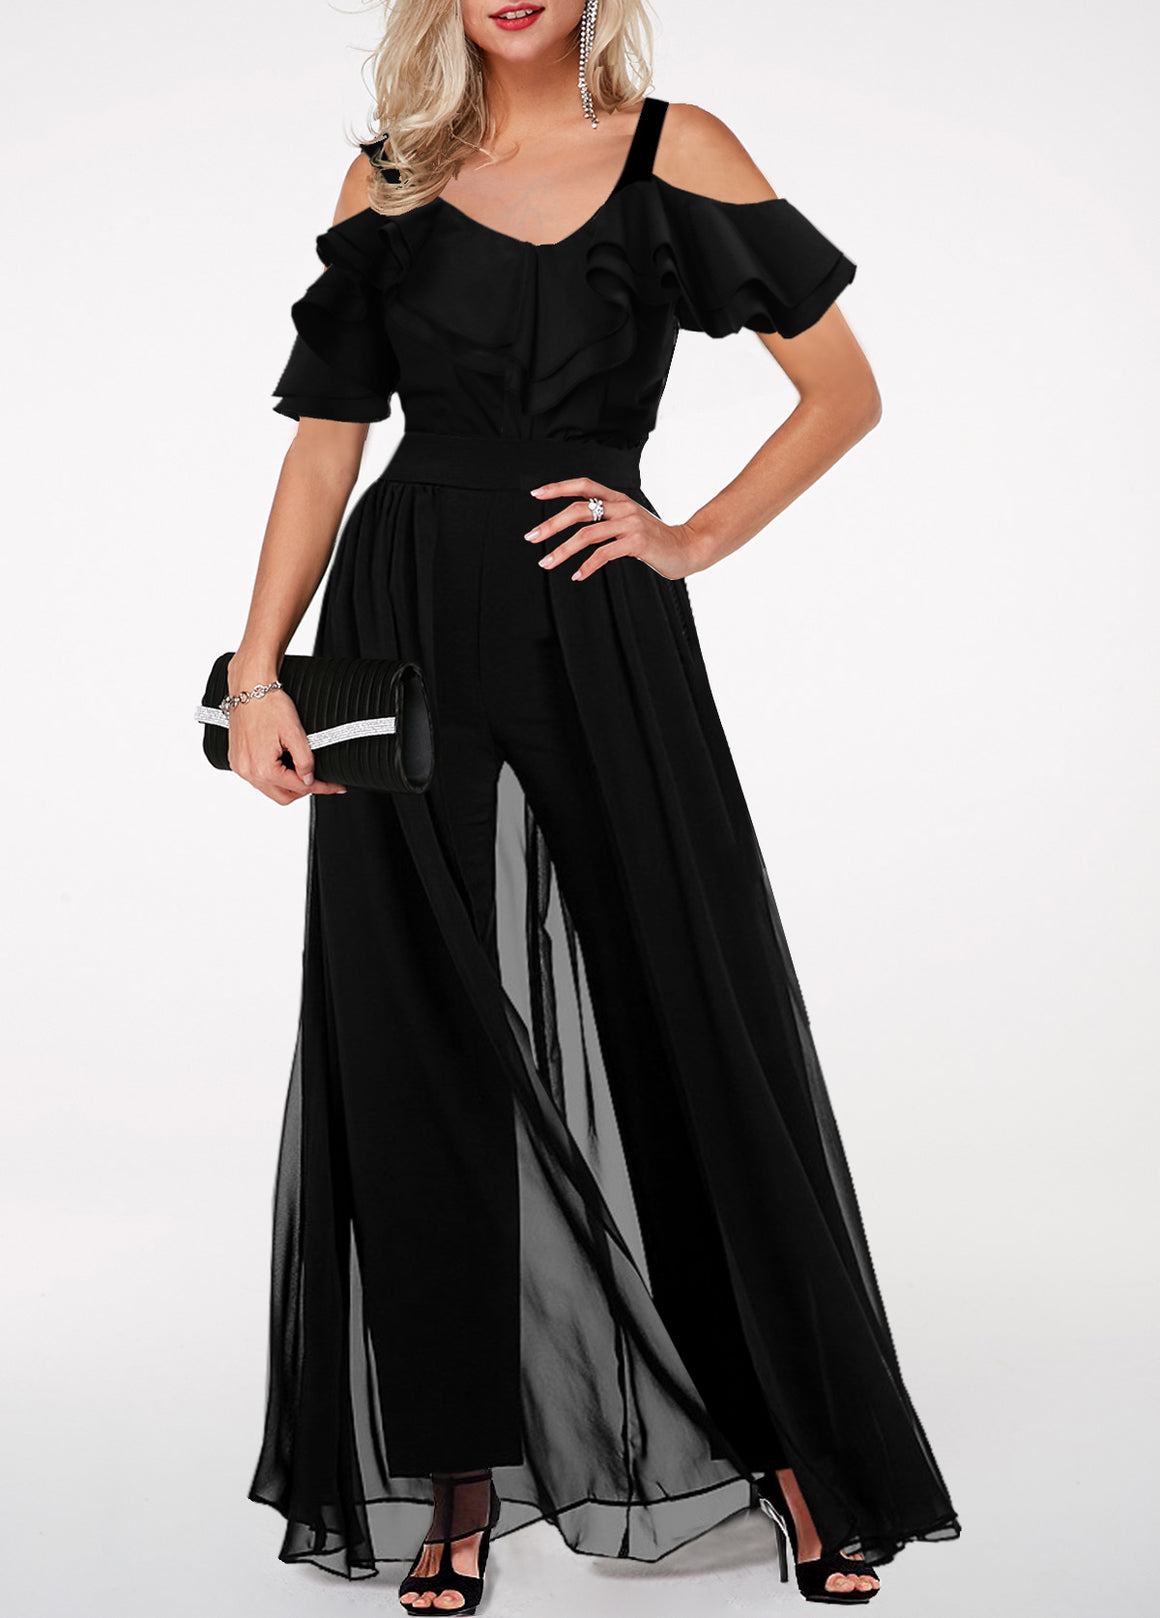 Ruffle Trim Strappy Cold Shoulder Black Jumpsuit img 1